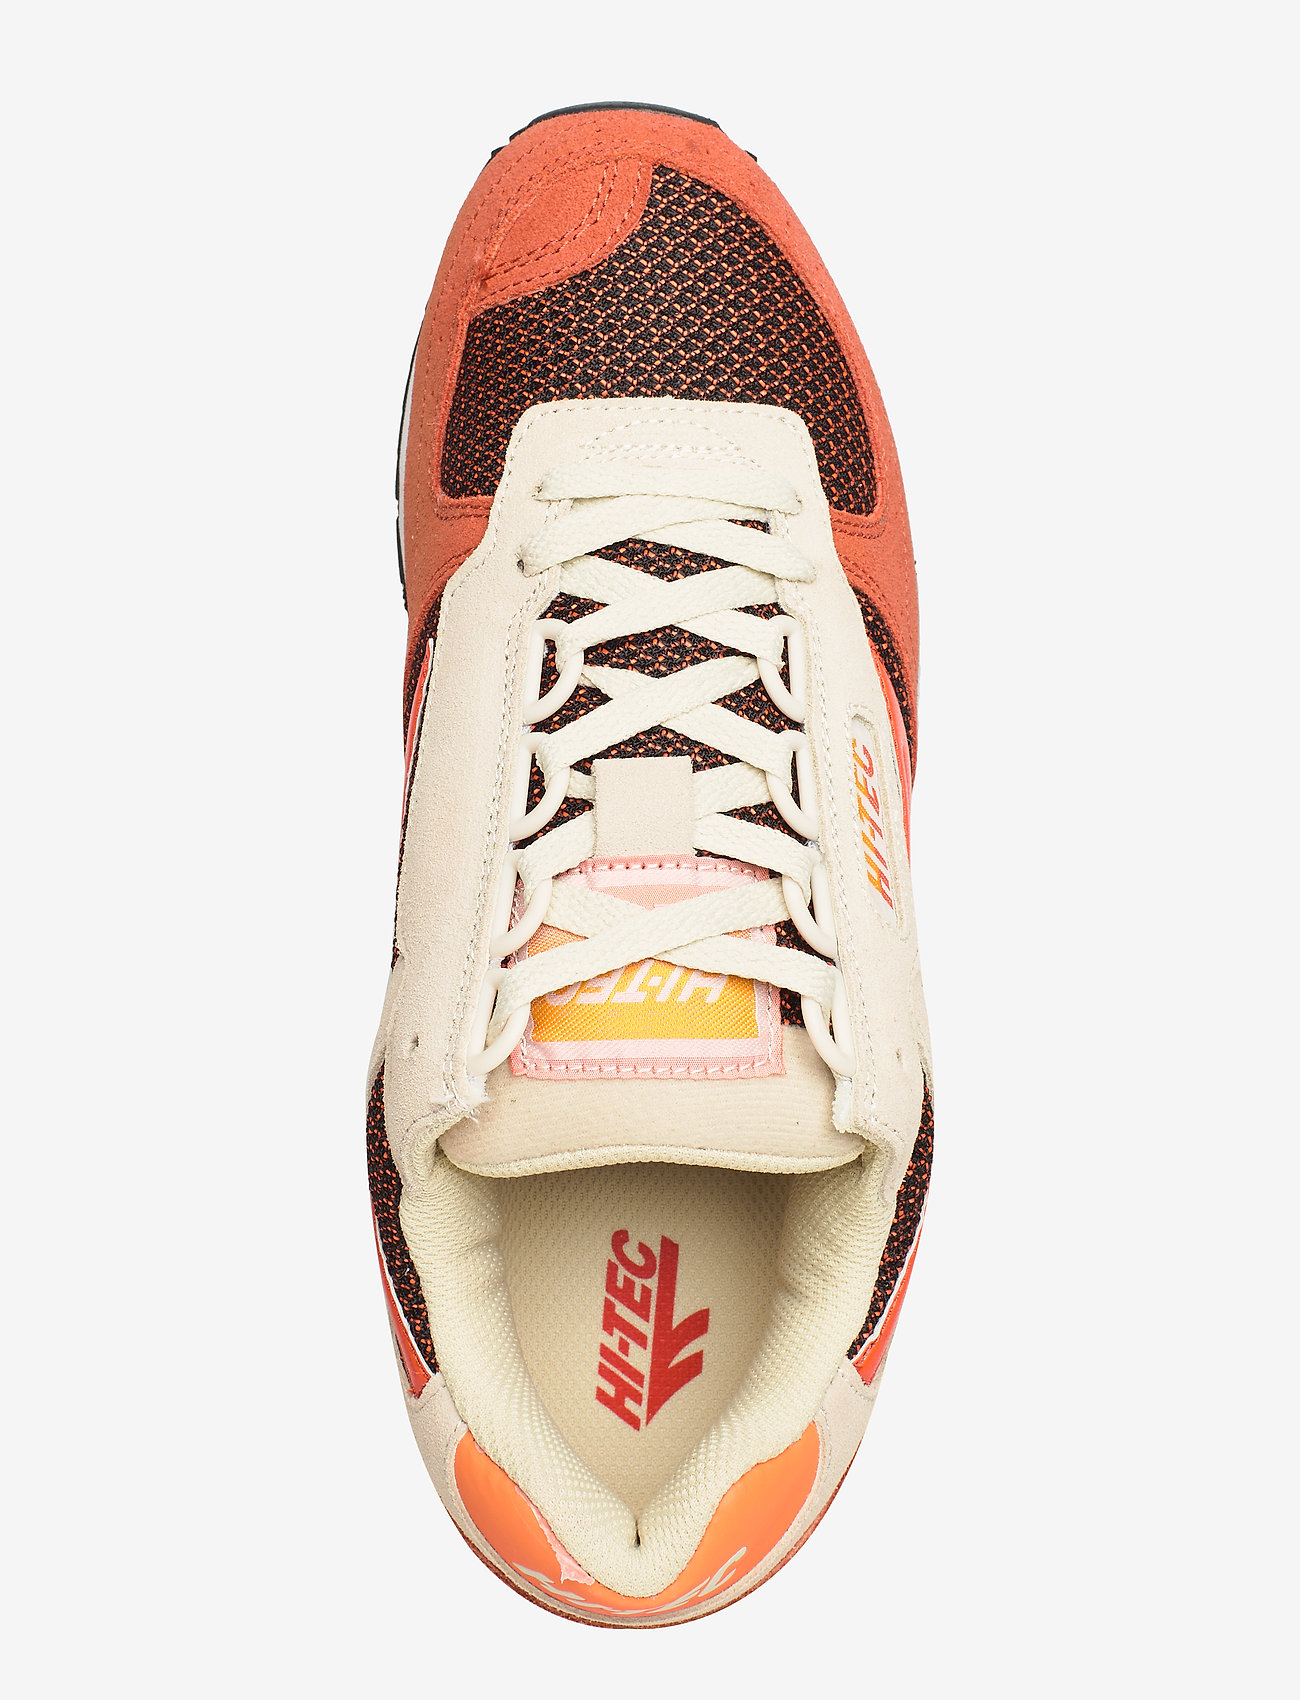 Ht Silver Shadow Ochre/birch/mandarin Red/orange (Ochre/birch/red/orng) (60 €) - Hi-Tec CBQFvJnN